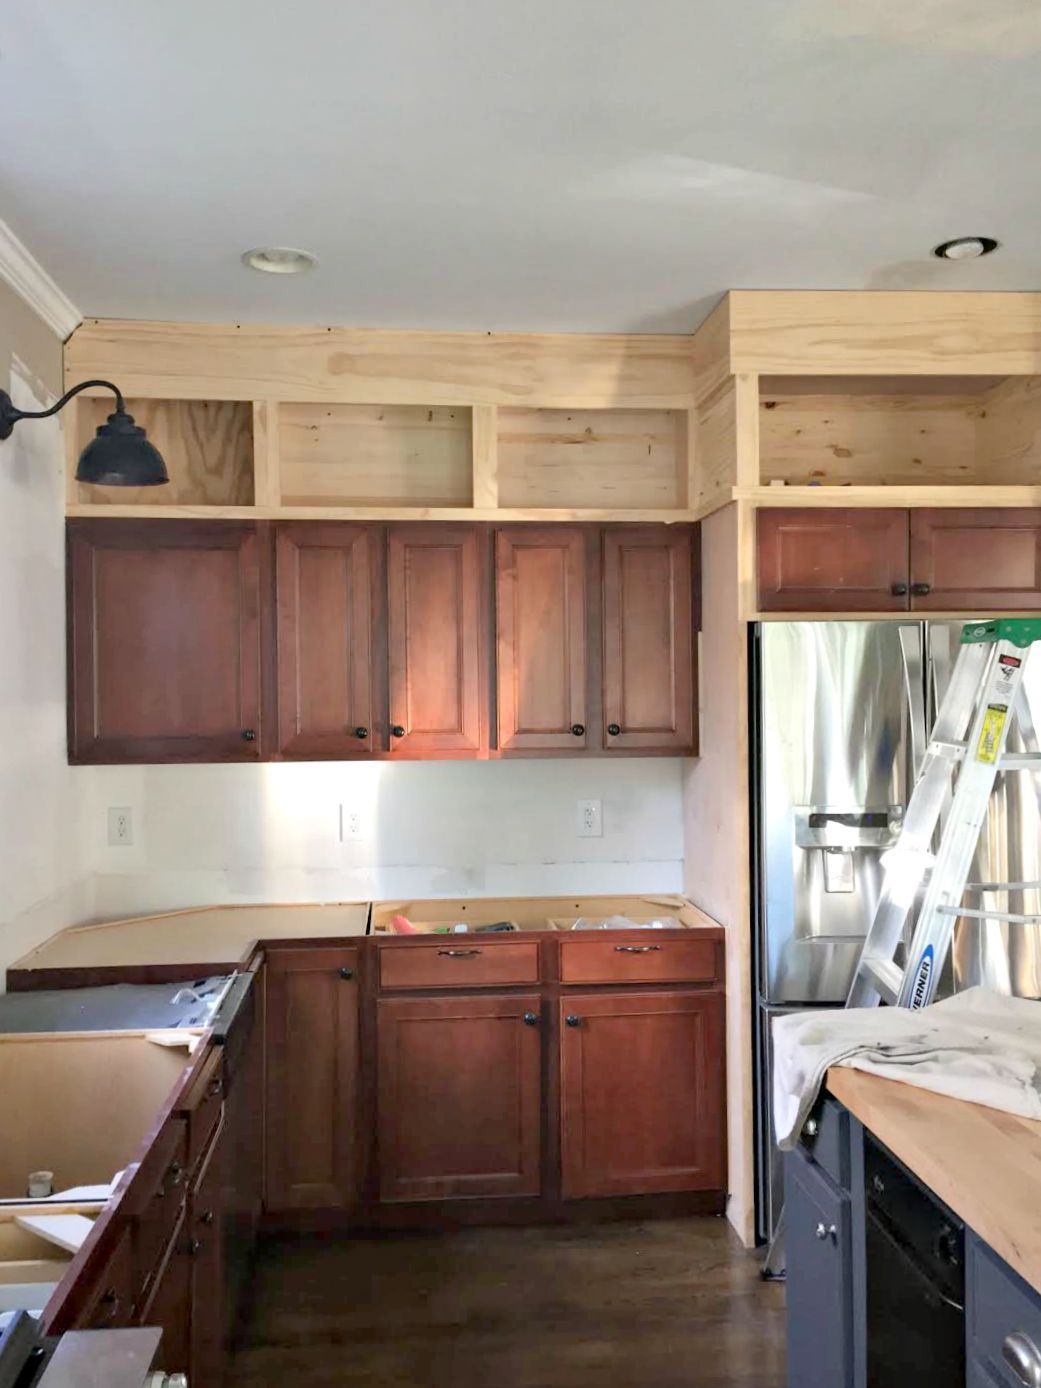 How To Update Kitchen Cabinets Building Cabinets Up To The Ceiling In 2019 House Updates